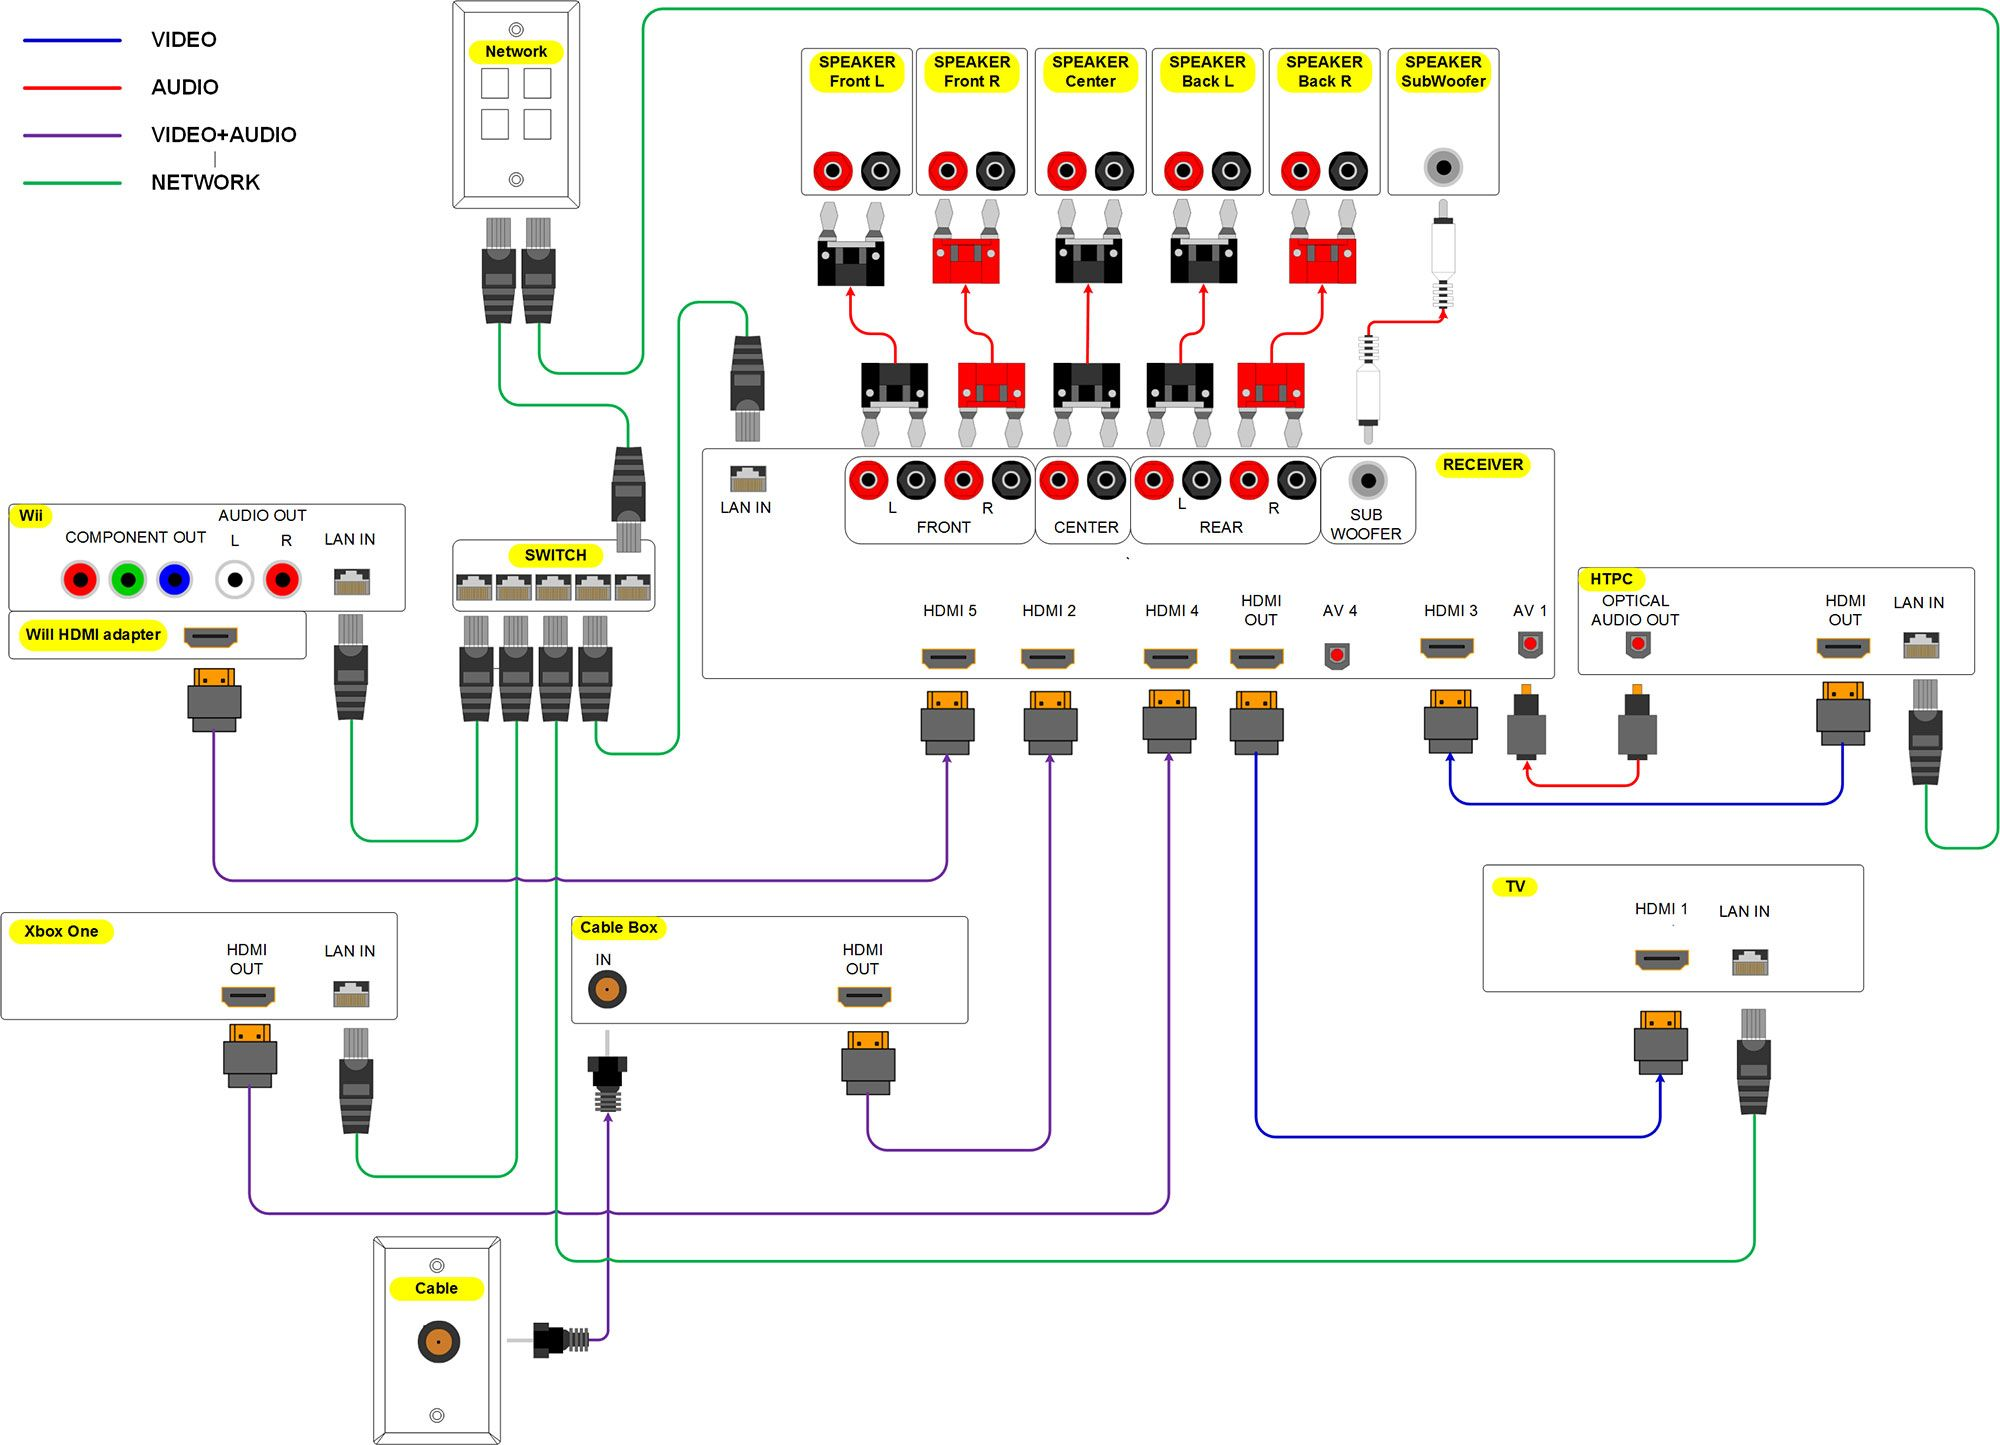 home theater wiring diagram click it to see the big 2000 pixel wide 2000 mustang stereo wiring home stereo wiring [ 2000 x 1445 Pixel ]